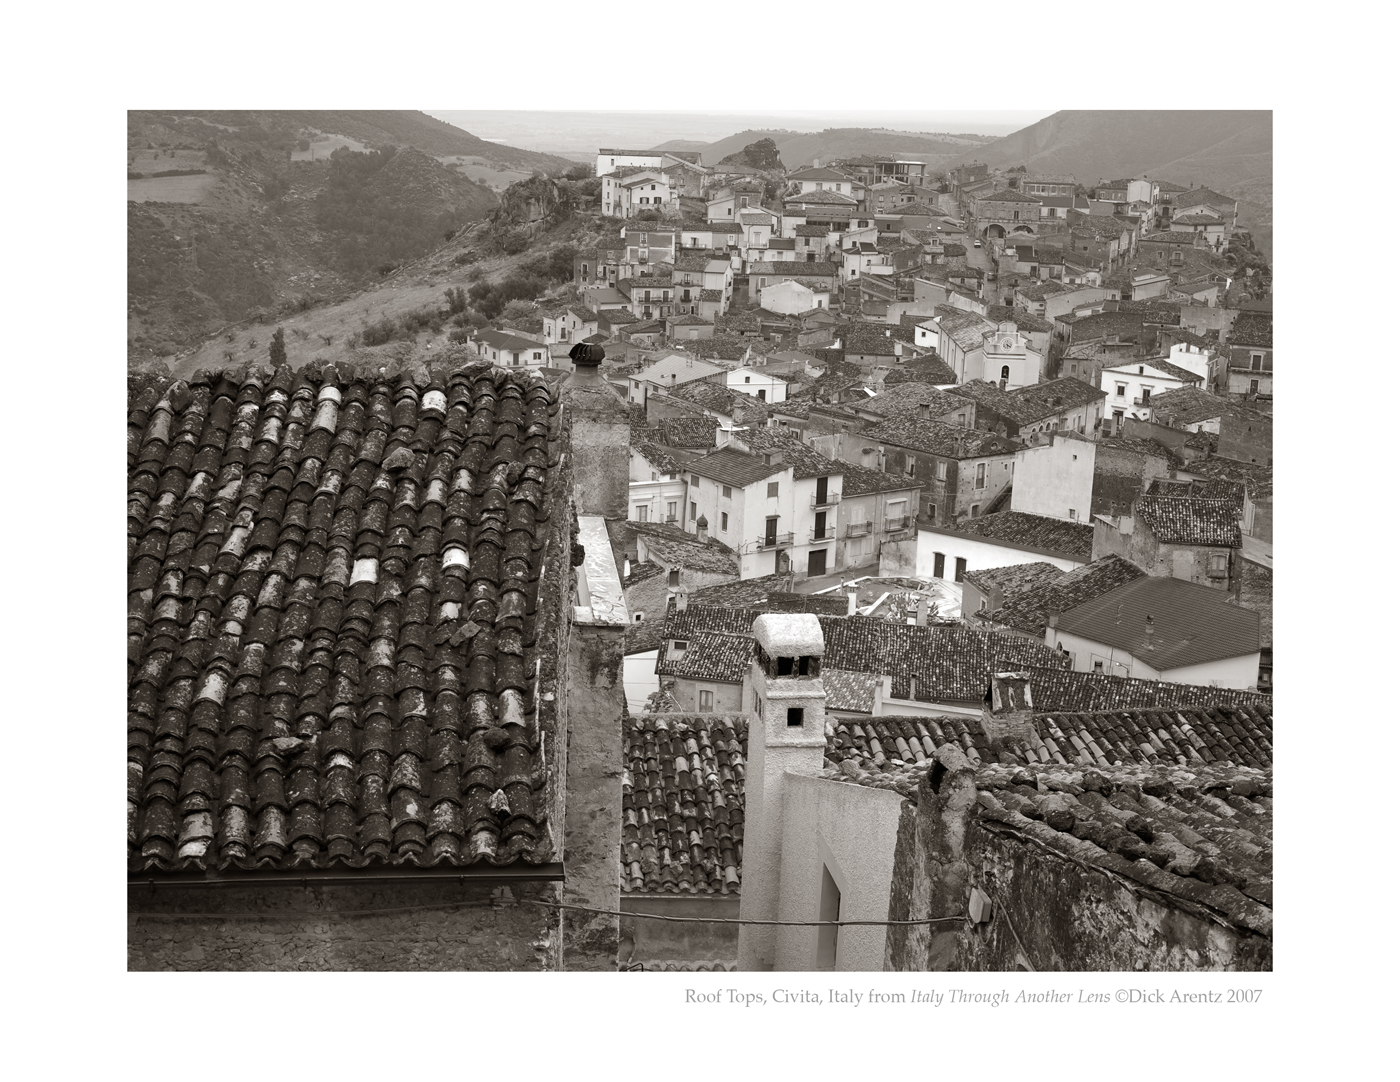 Roof Tops, Civita, Italy - Italy Through Another Lens